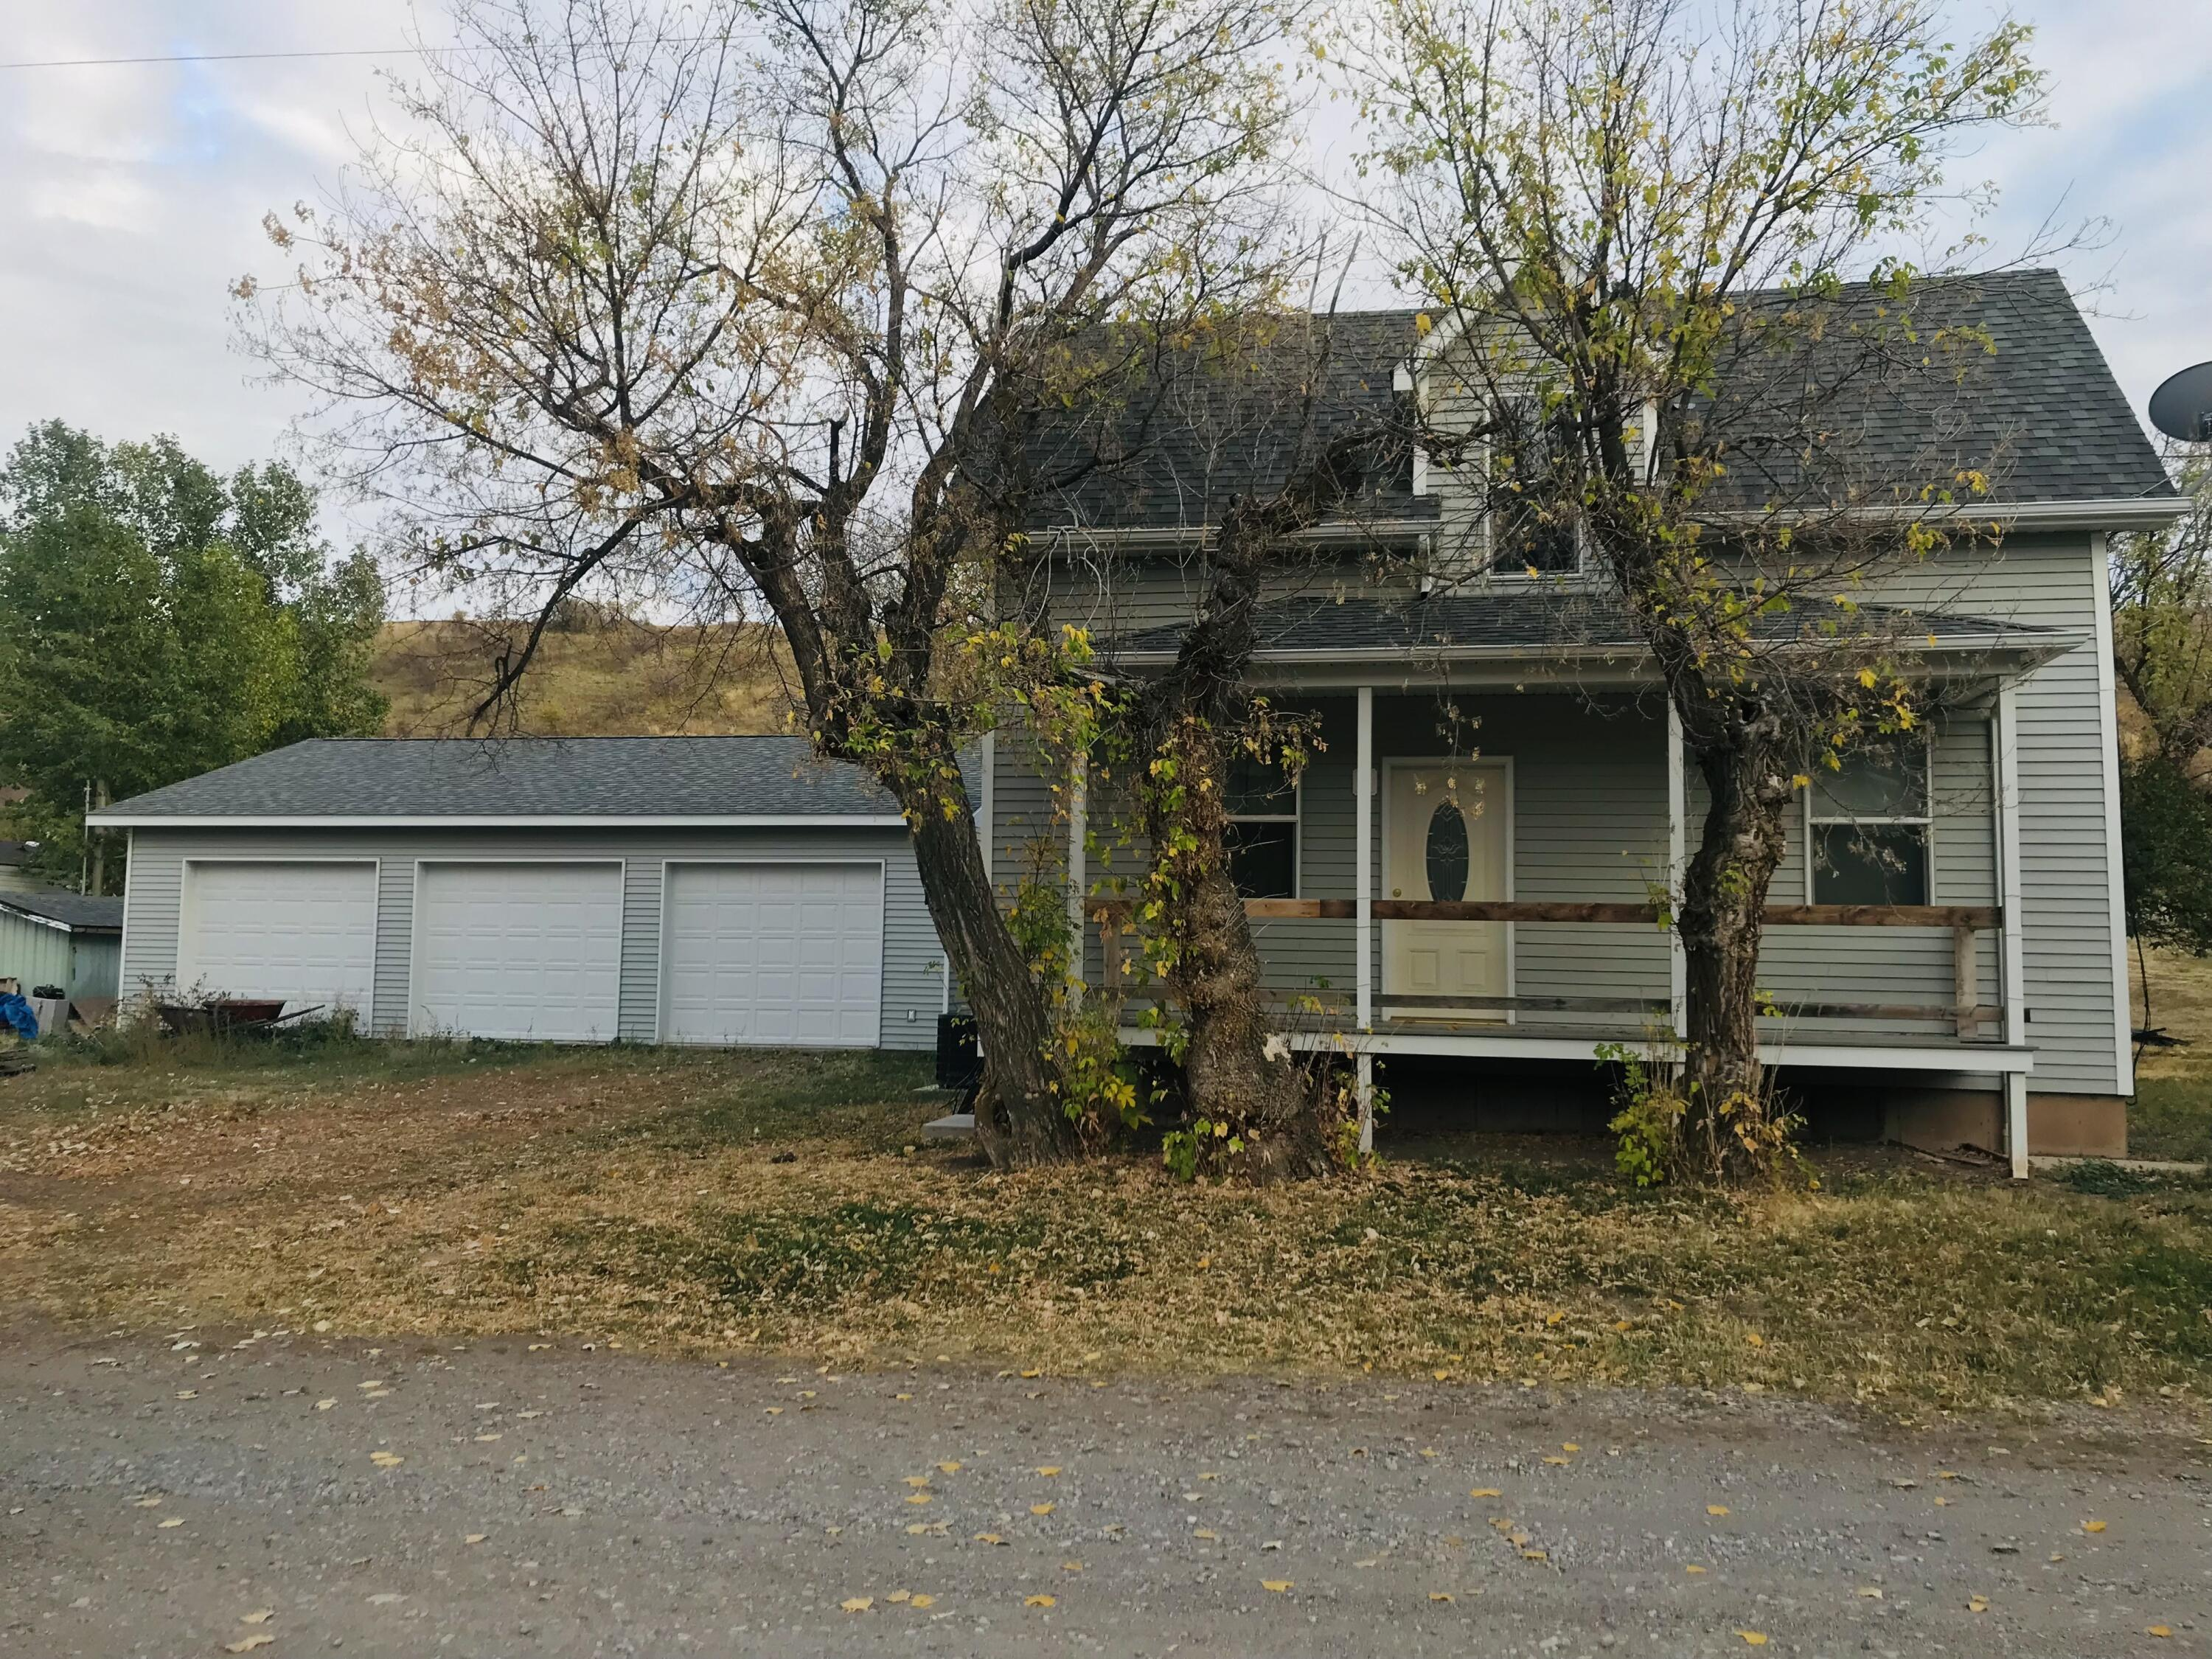 Looking to get a little ways out of town,  check out this nice little  FIXER in Stockett.  Newer foundation, siding, roof. windows.   Also has central air and comes with a built in generator. The interior needs Alot of TLC.  The 30x40 shop is heated and insulated and there is a great storage shed that is on a concrete slab and includes electricity.  The property is being sold ''AS IS'' with all its contents.